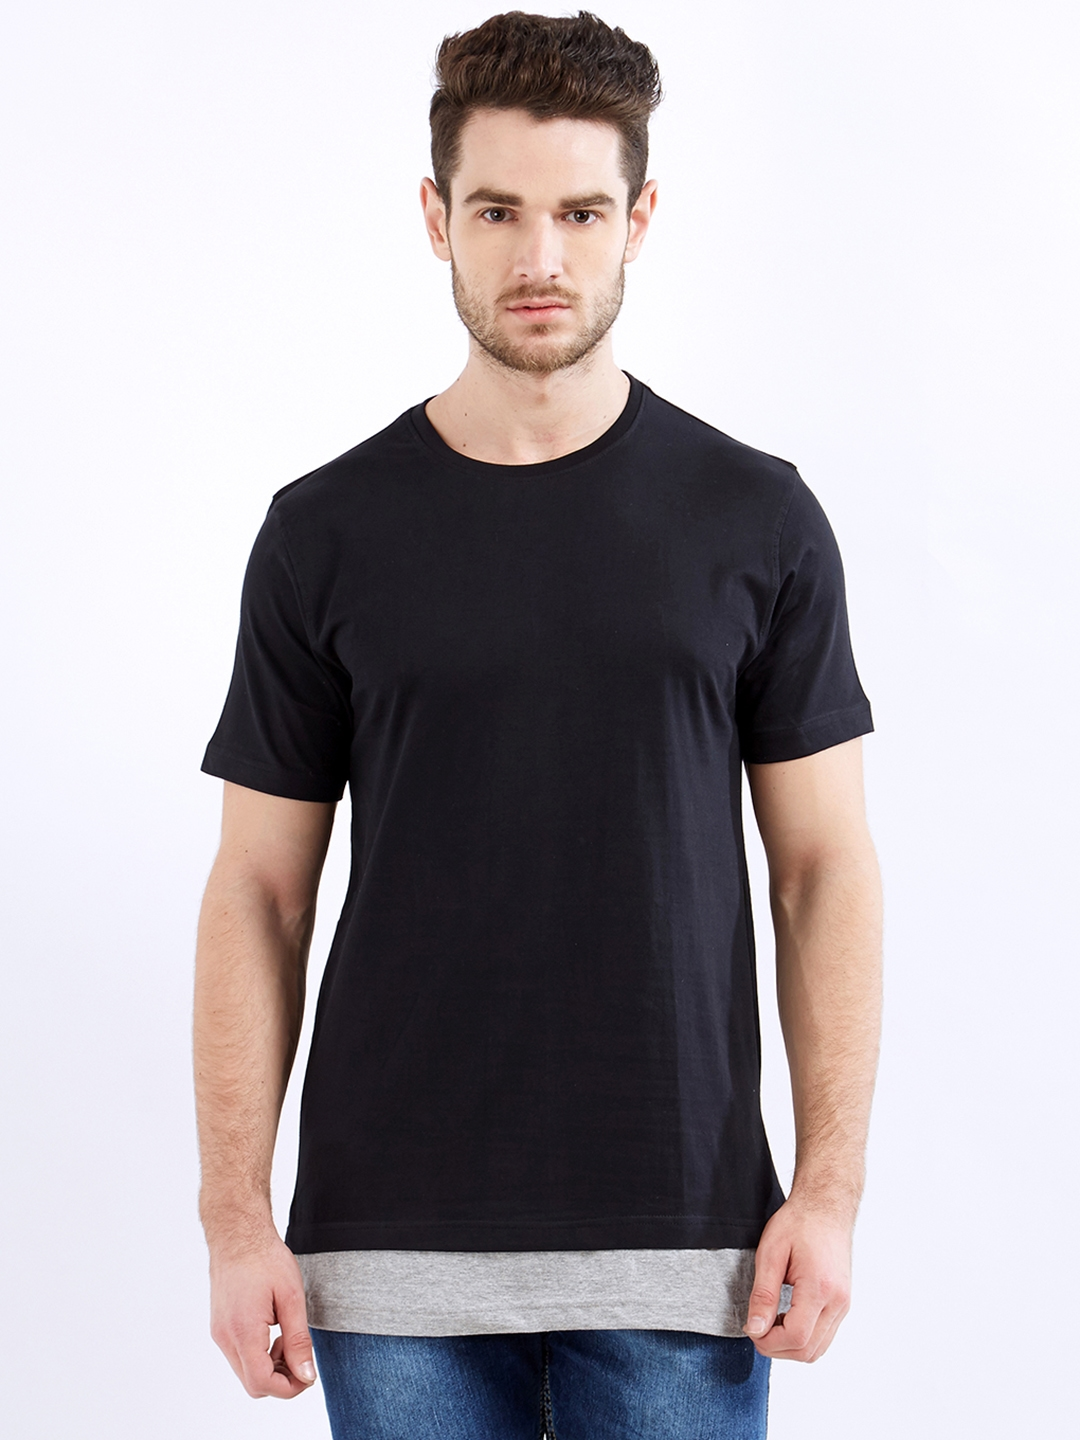 Maniac Men Black Solid Round Neck T shirt